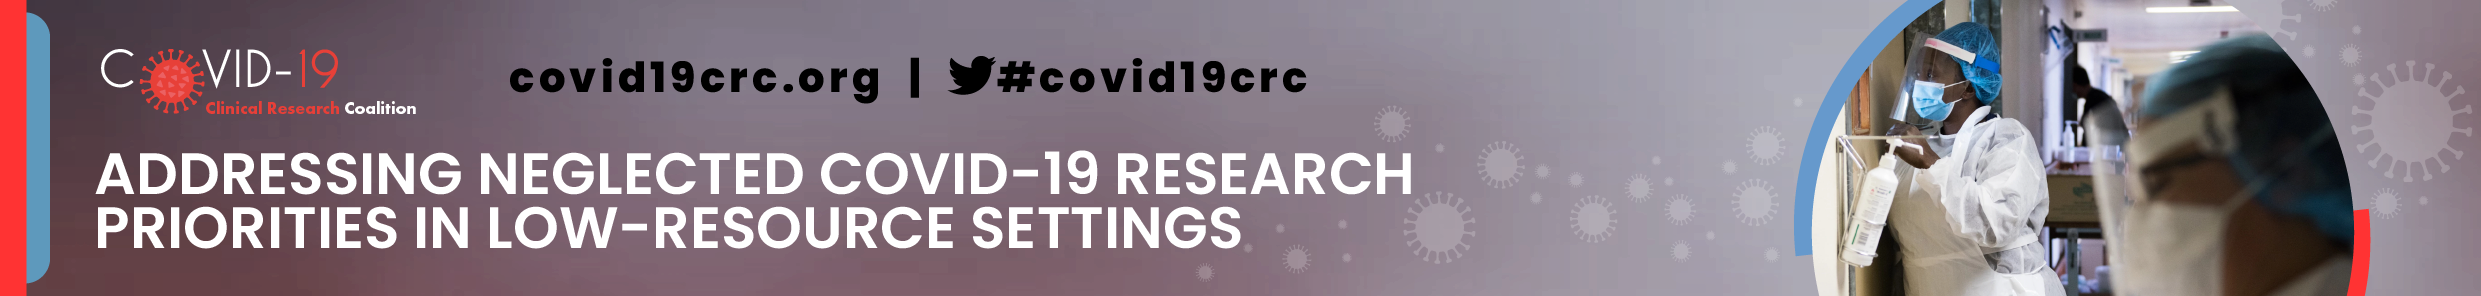 COVID-19 Clinical Research Coalition